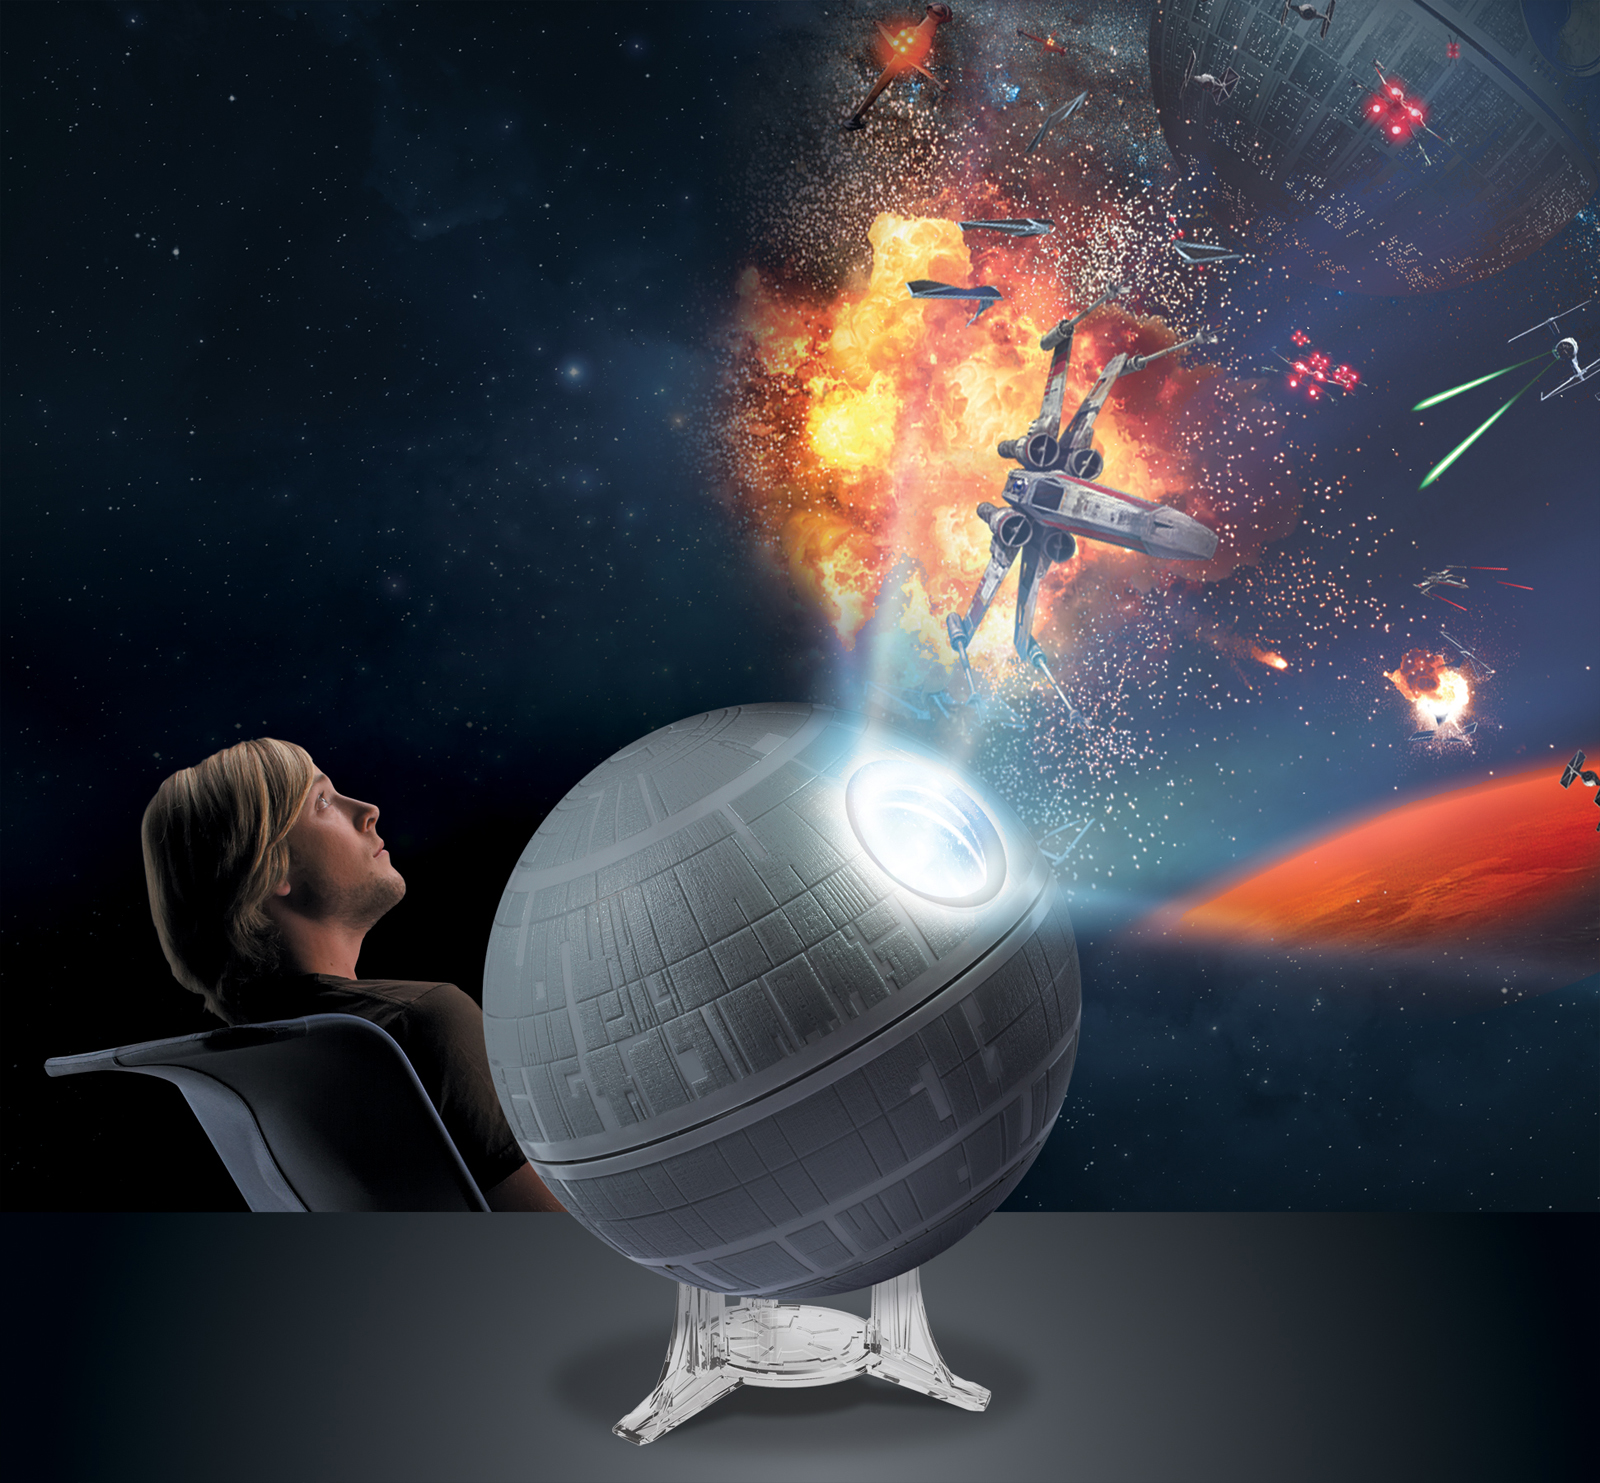 uncle milton star wars™ science death star™ galaxy high res